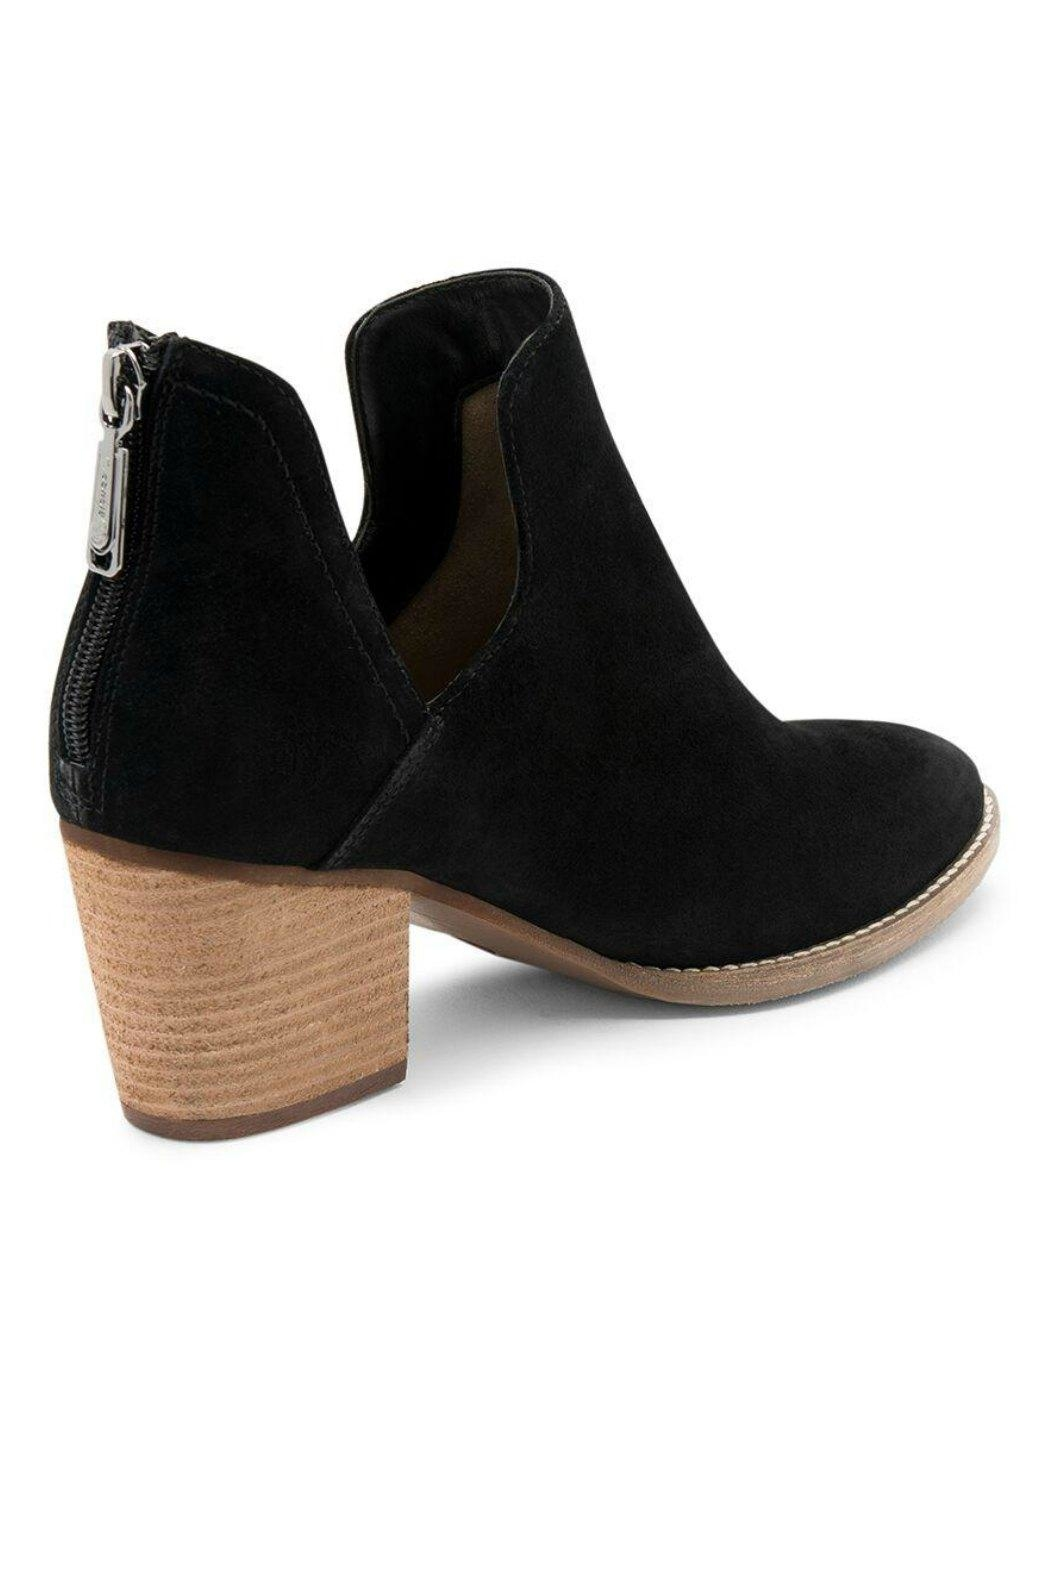 Blondo Nelson Suede Bootie - Side Cropped Image